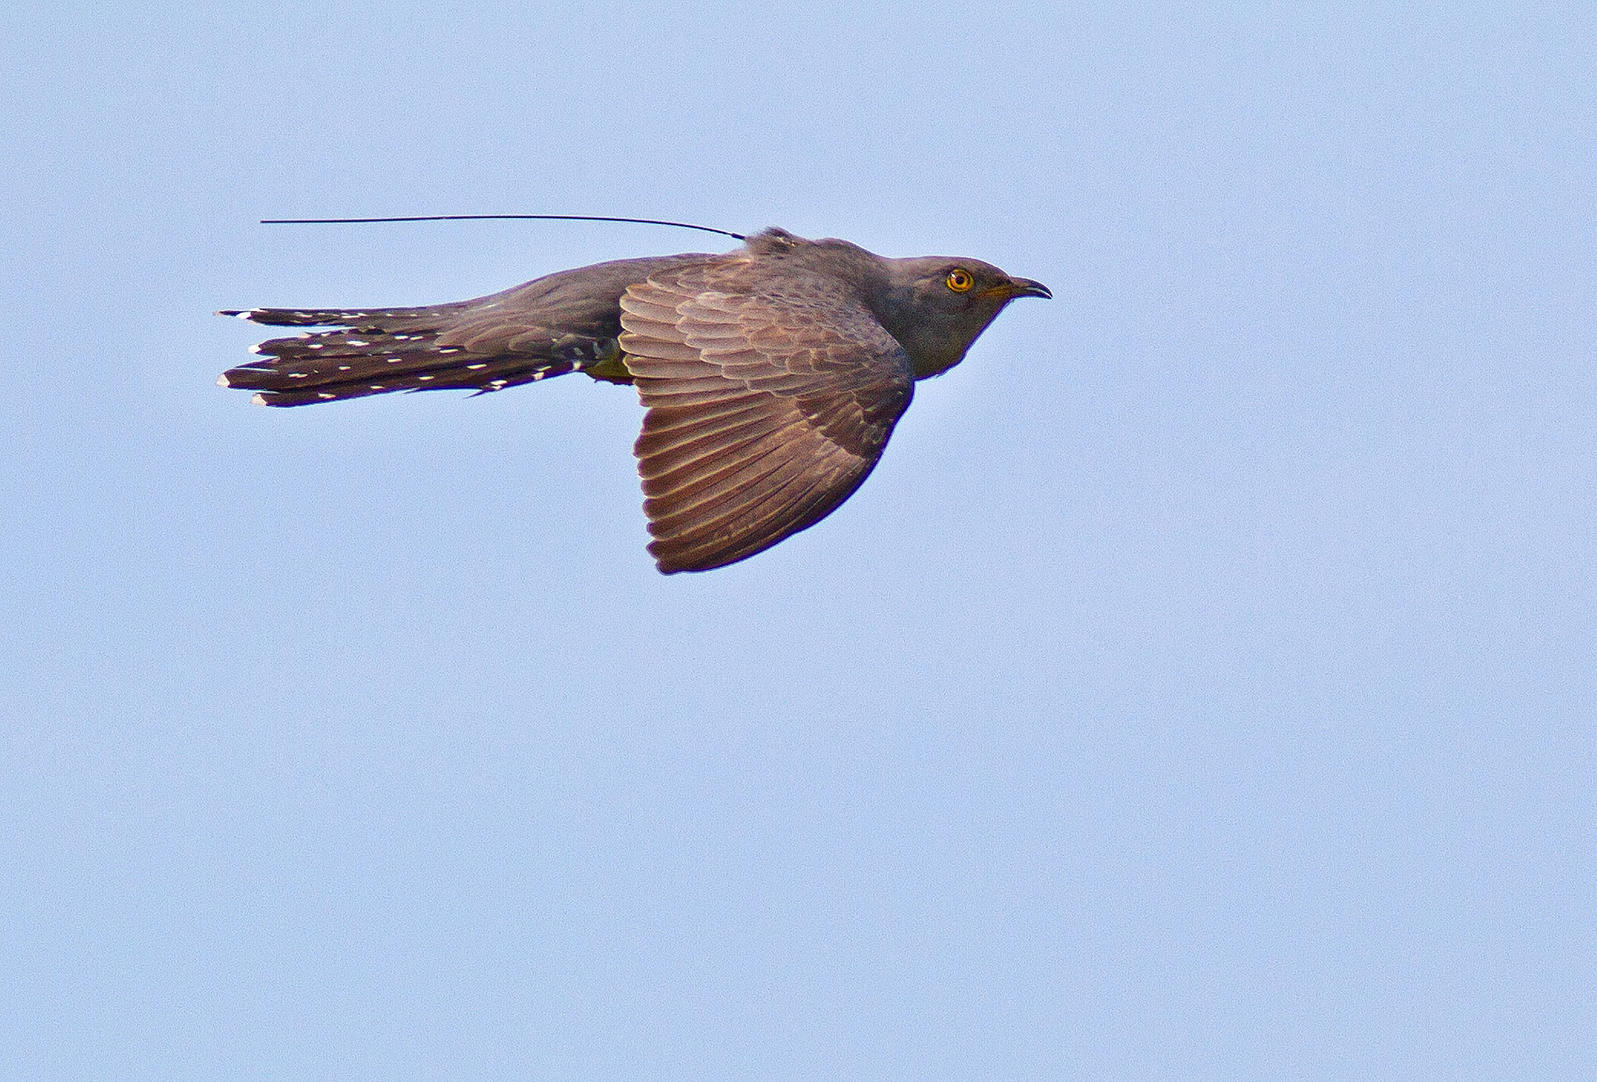 Scientists were able to follow individual Common Cuckoos with satellite tags often used on larger birds. Palle Sørensen